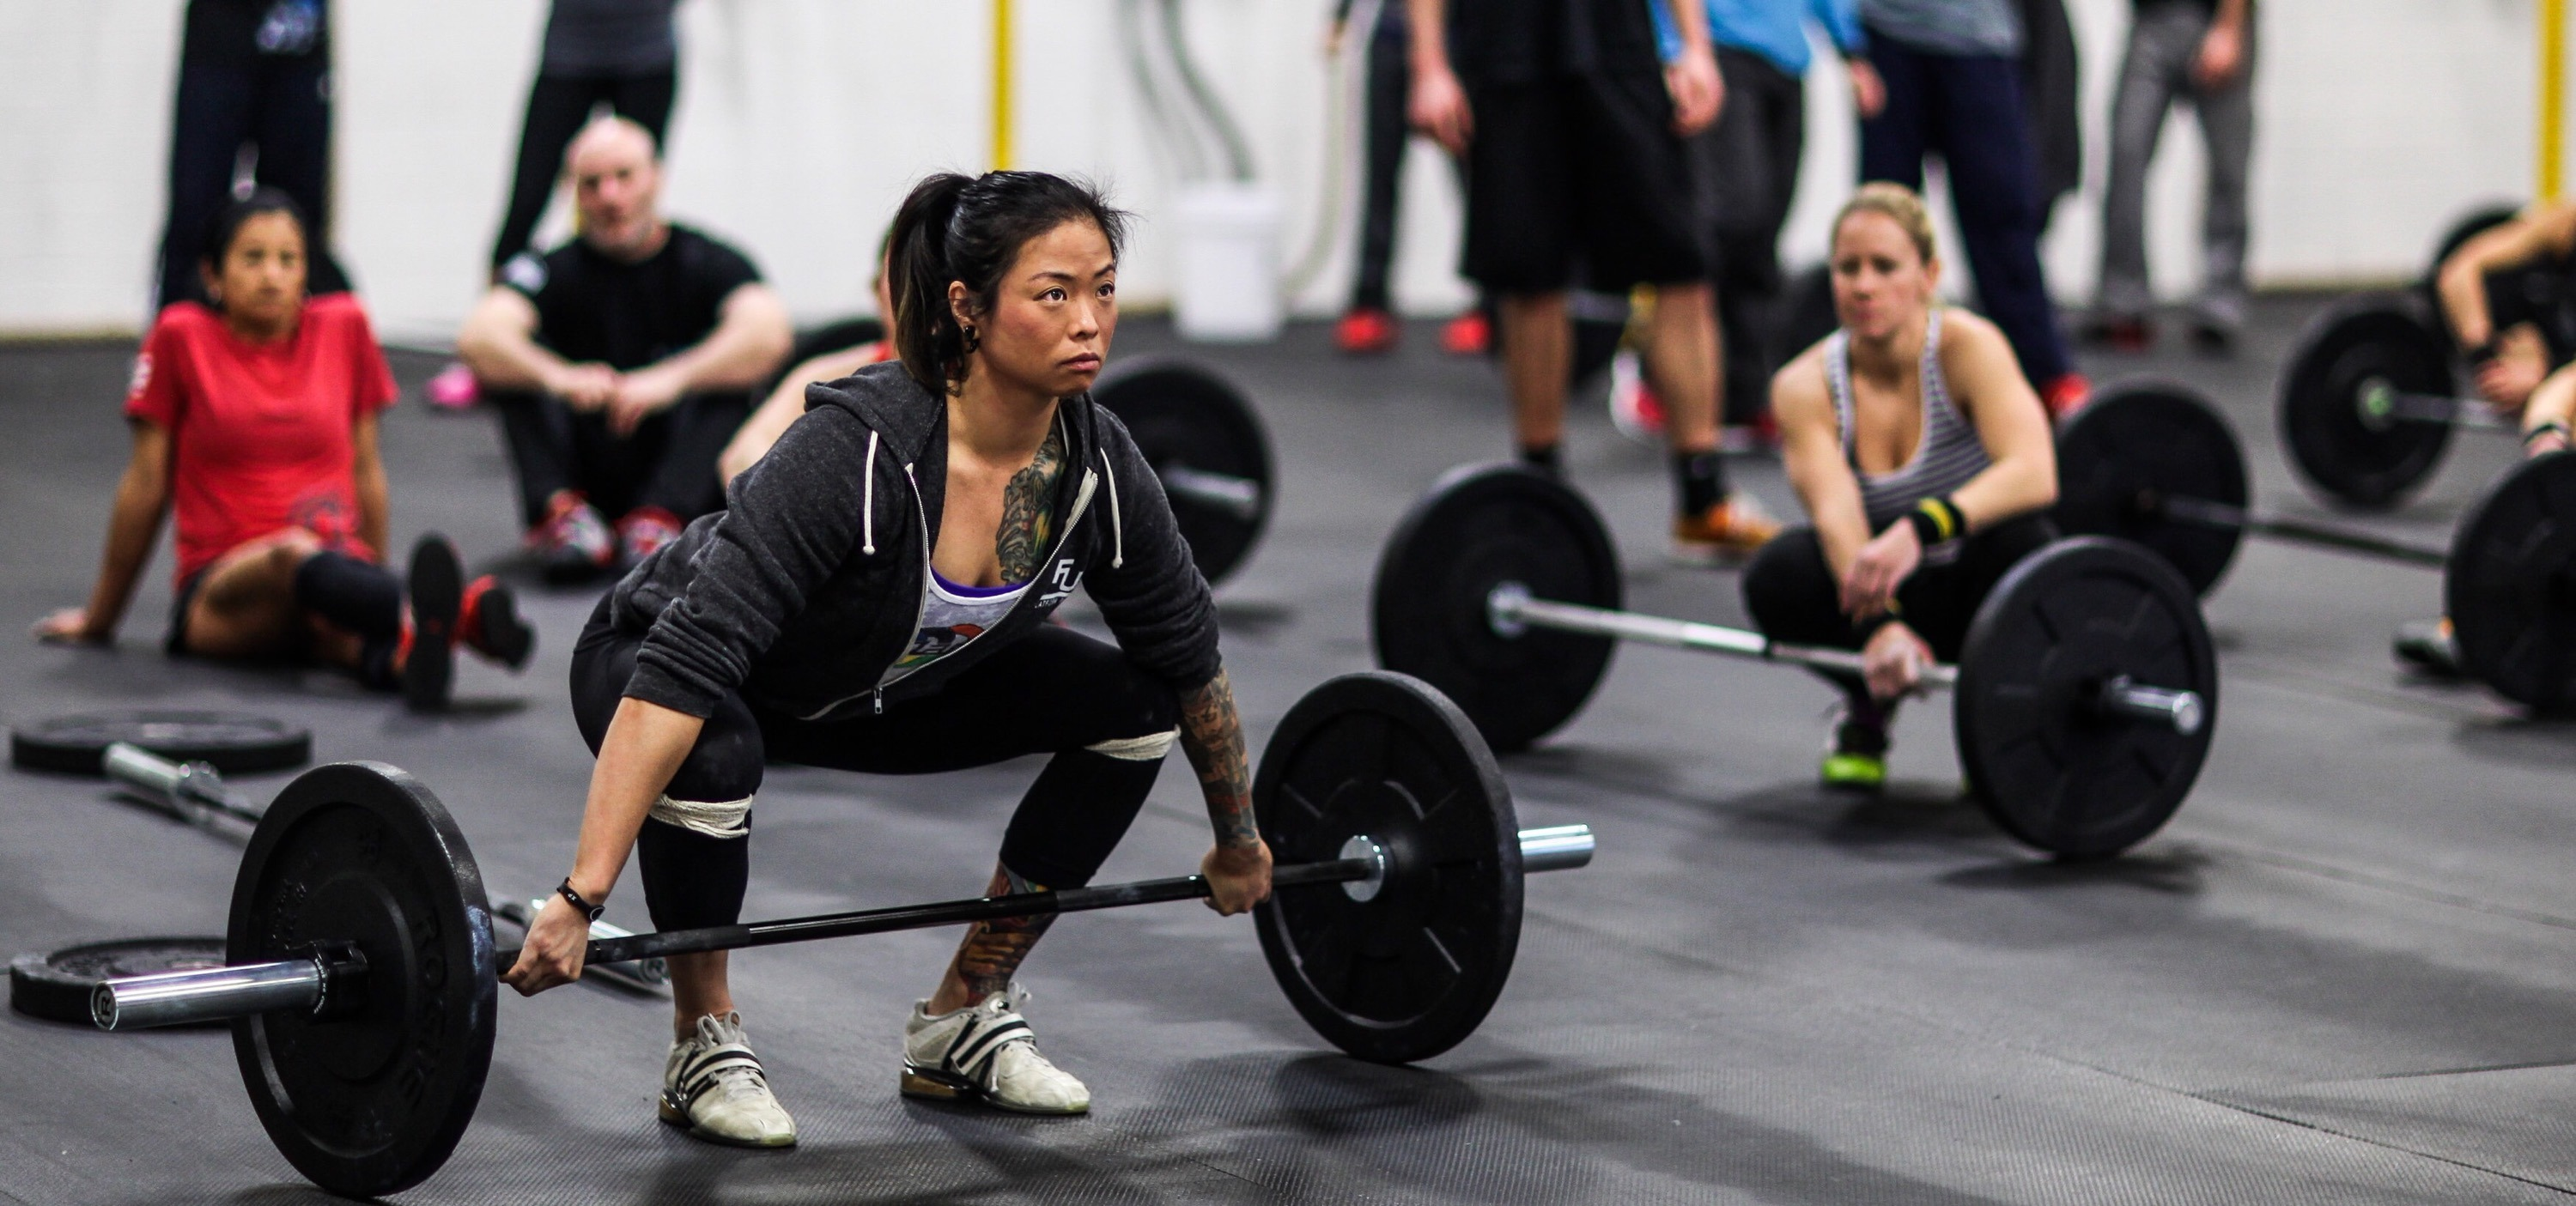 Diane Fu on CrossFit, Olympic Weightlifting, & the Importance of